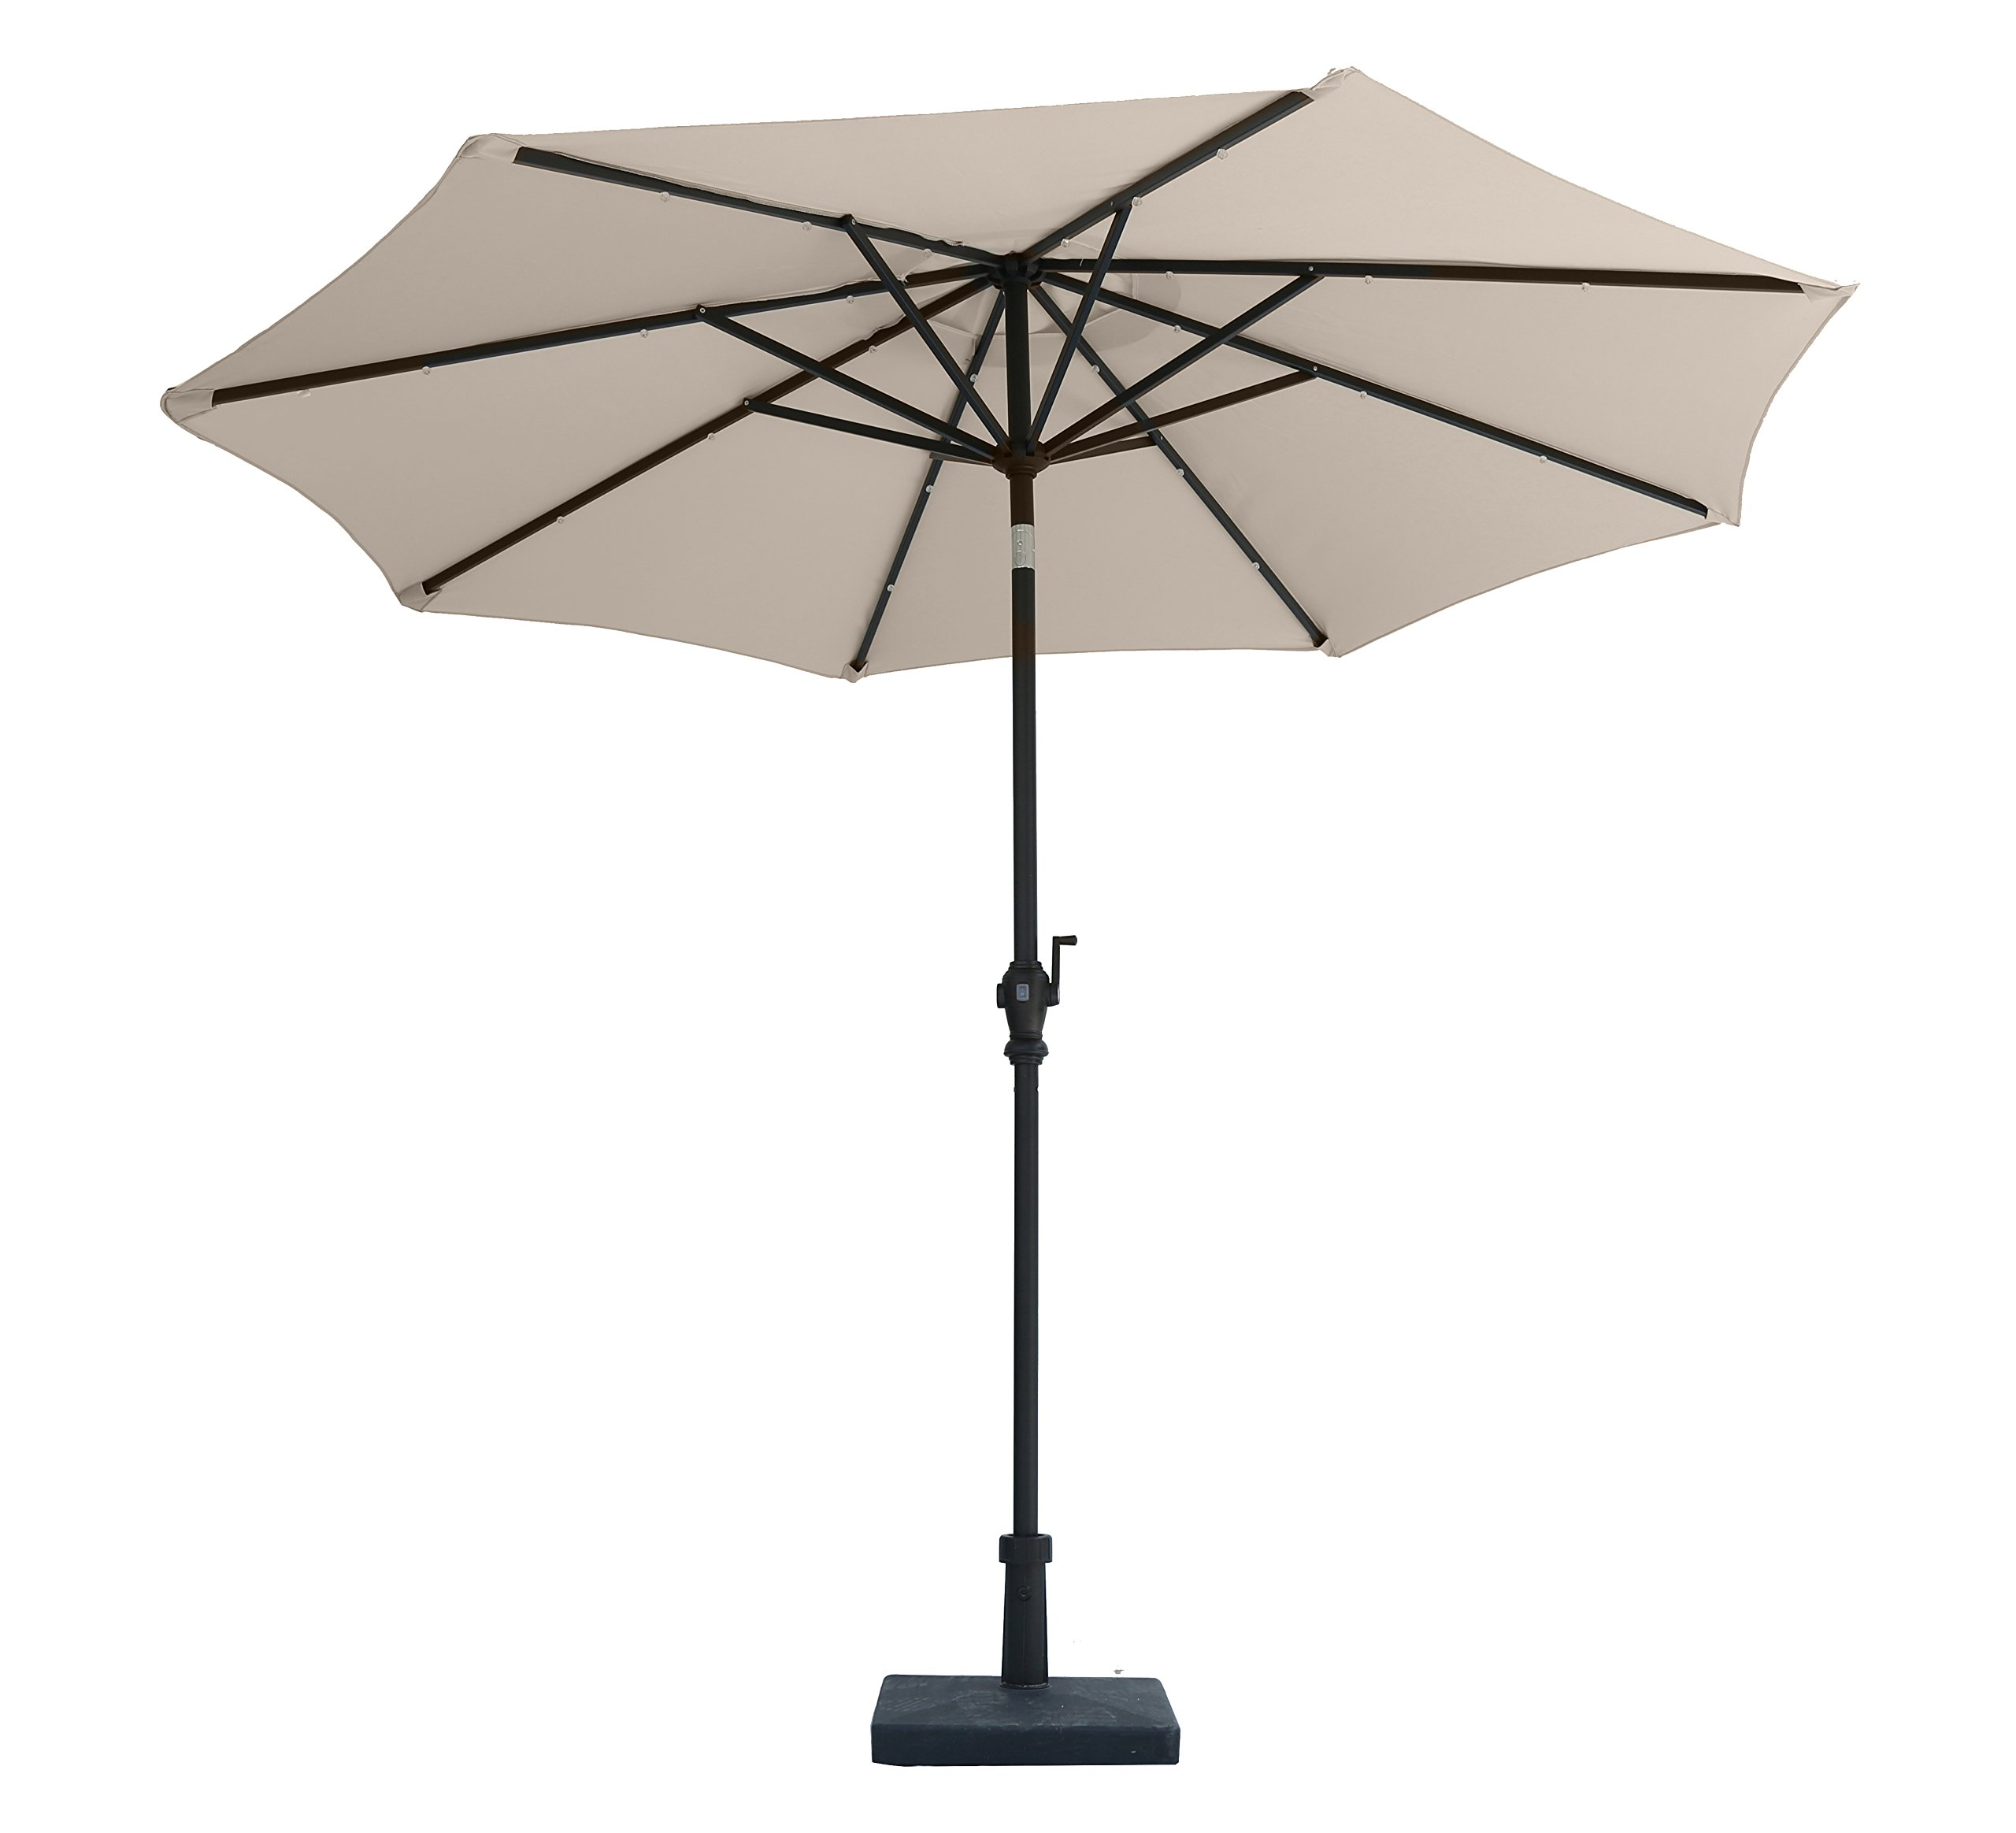 "Jardin du Sud"" 9 Feet Solar Powered LED Lighted Patio Umbrella with 24 LED Lights, Tilt and Crank, 220 GSM Fade Resistant Canopy – Bring Shade and Style to Your Yard"